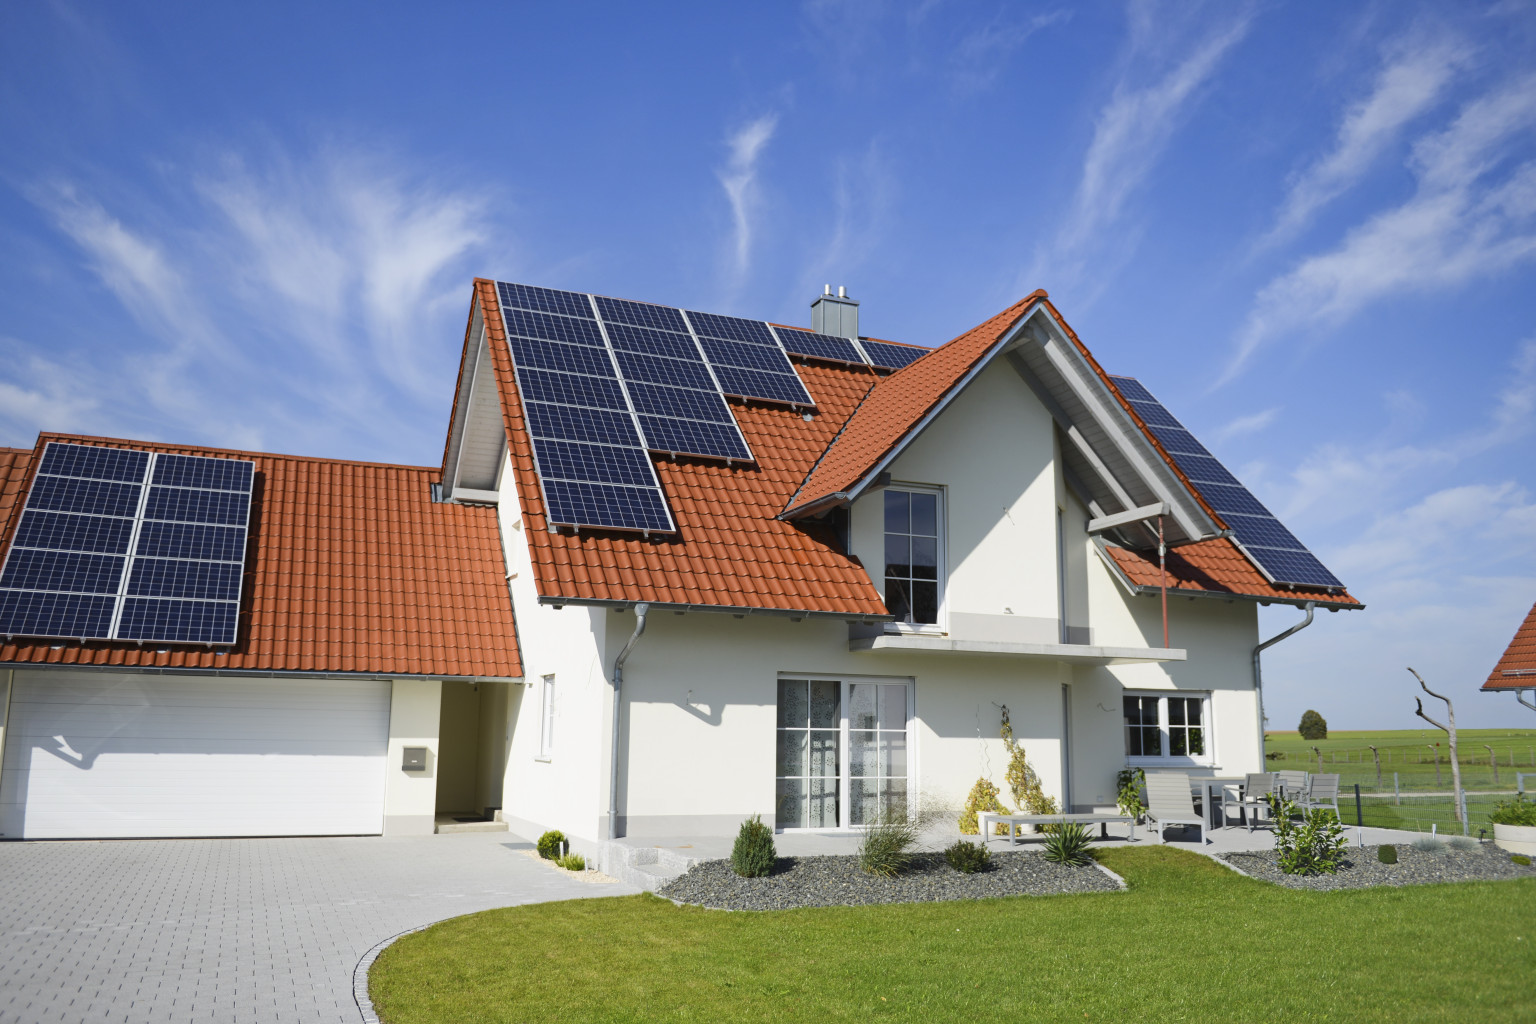 6 Compelling Reasons You Should Go Solar Huffpost